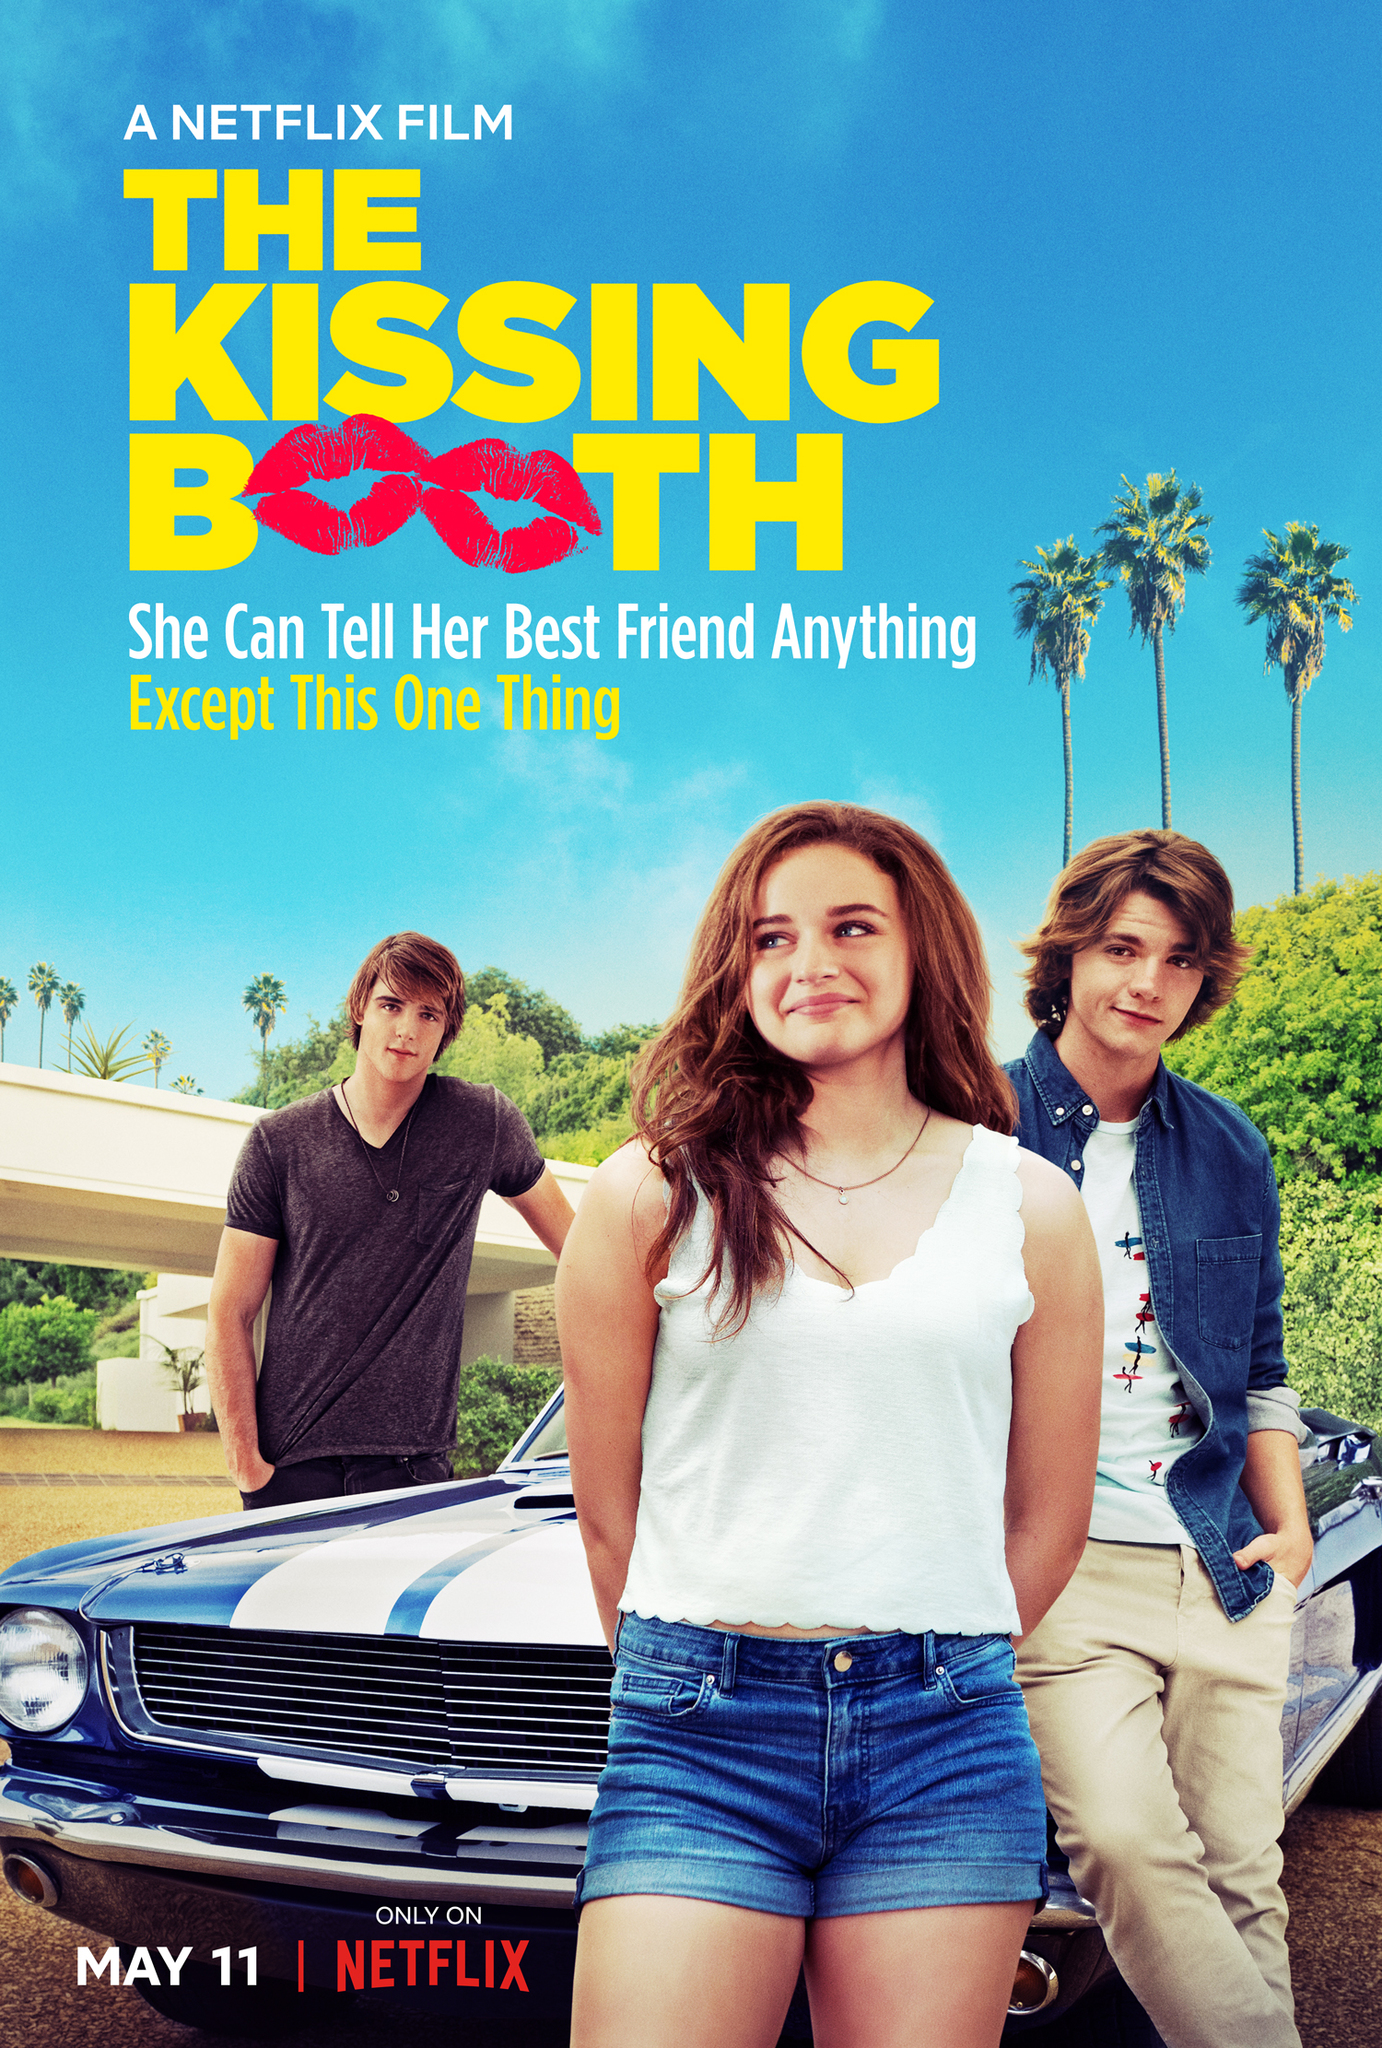 the kissing booth poster.jpg